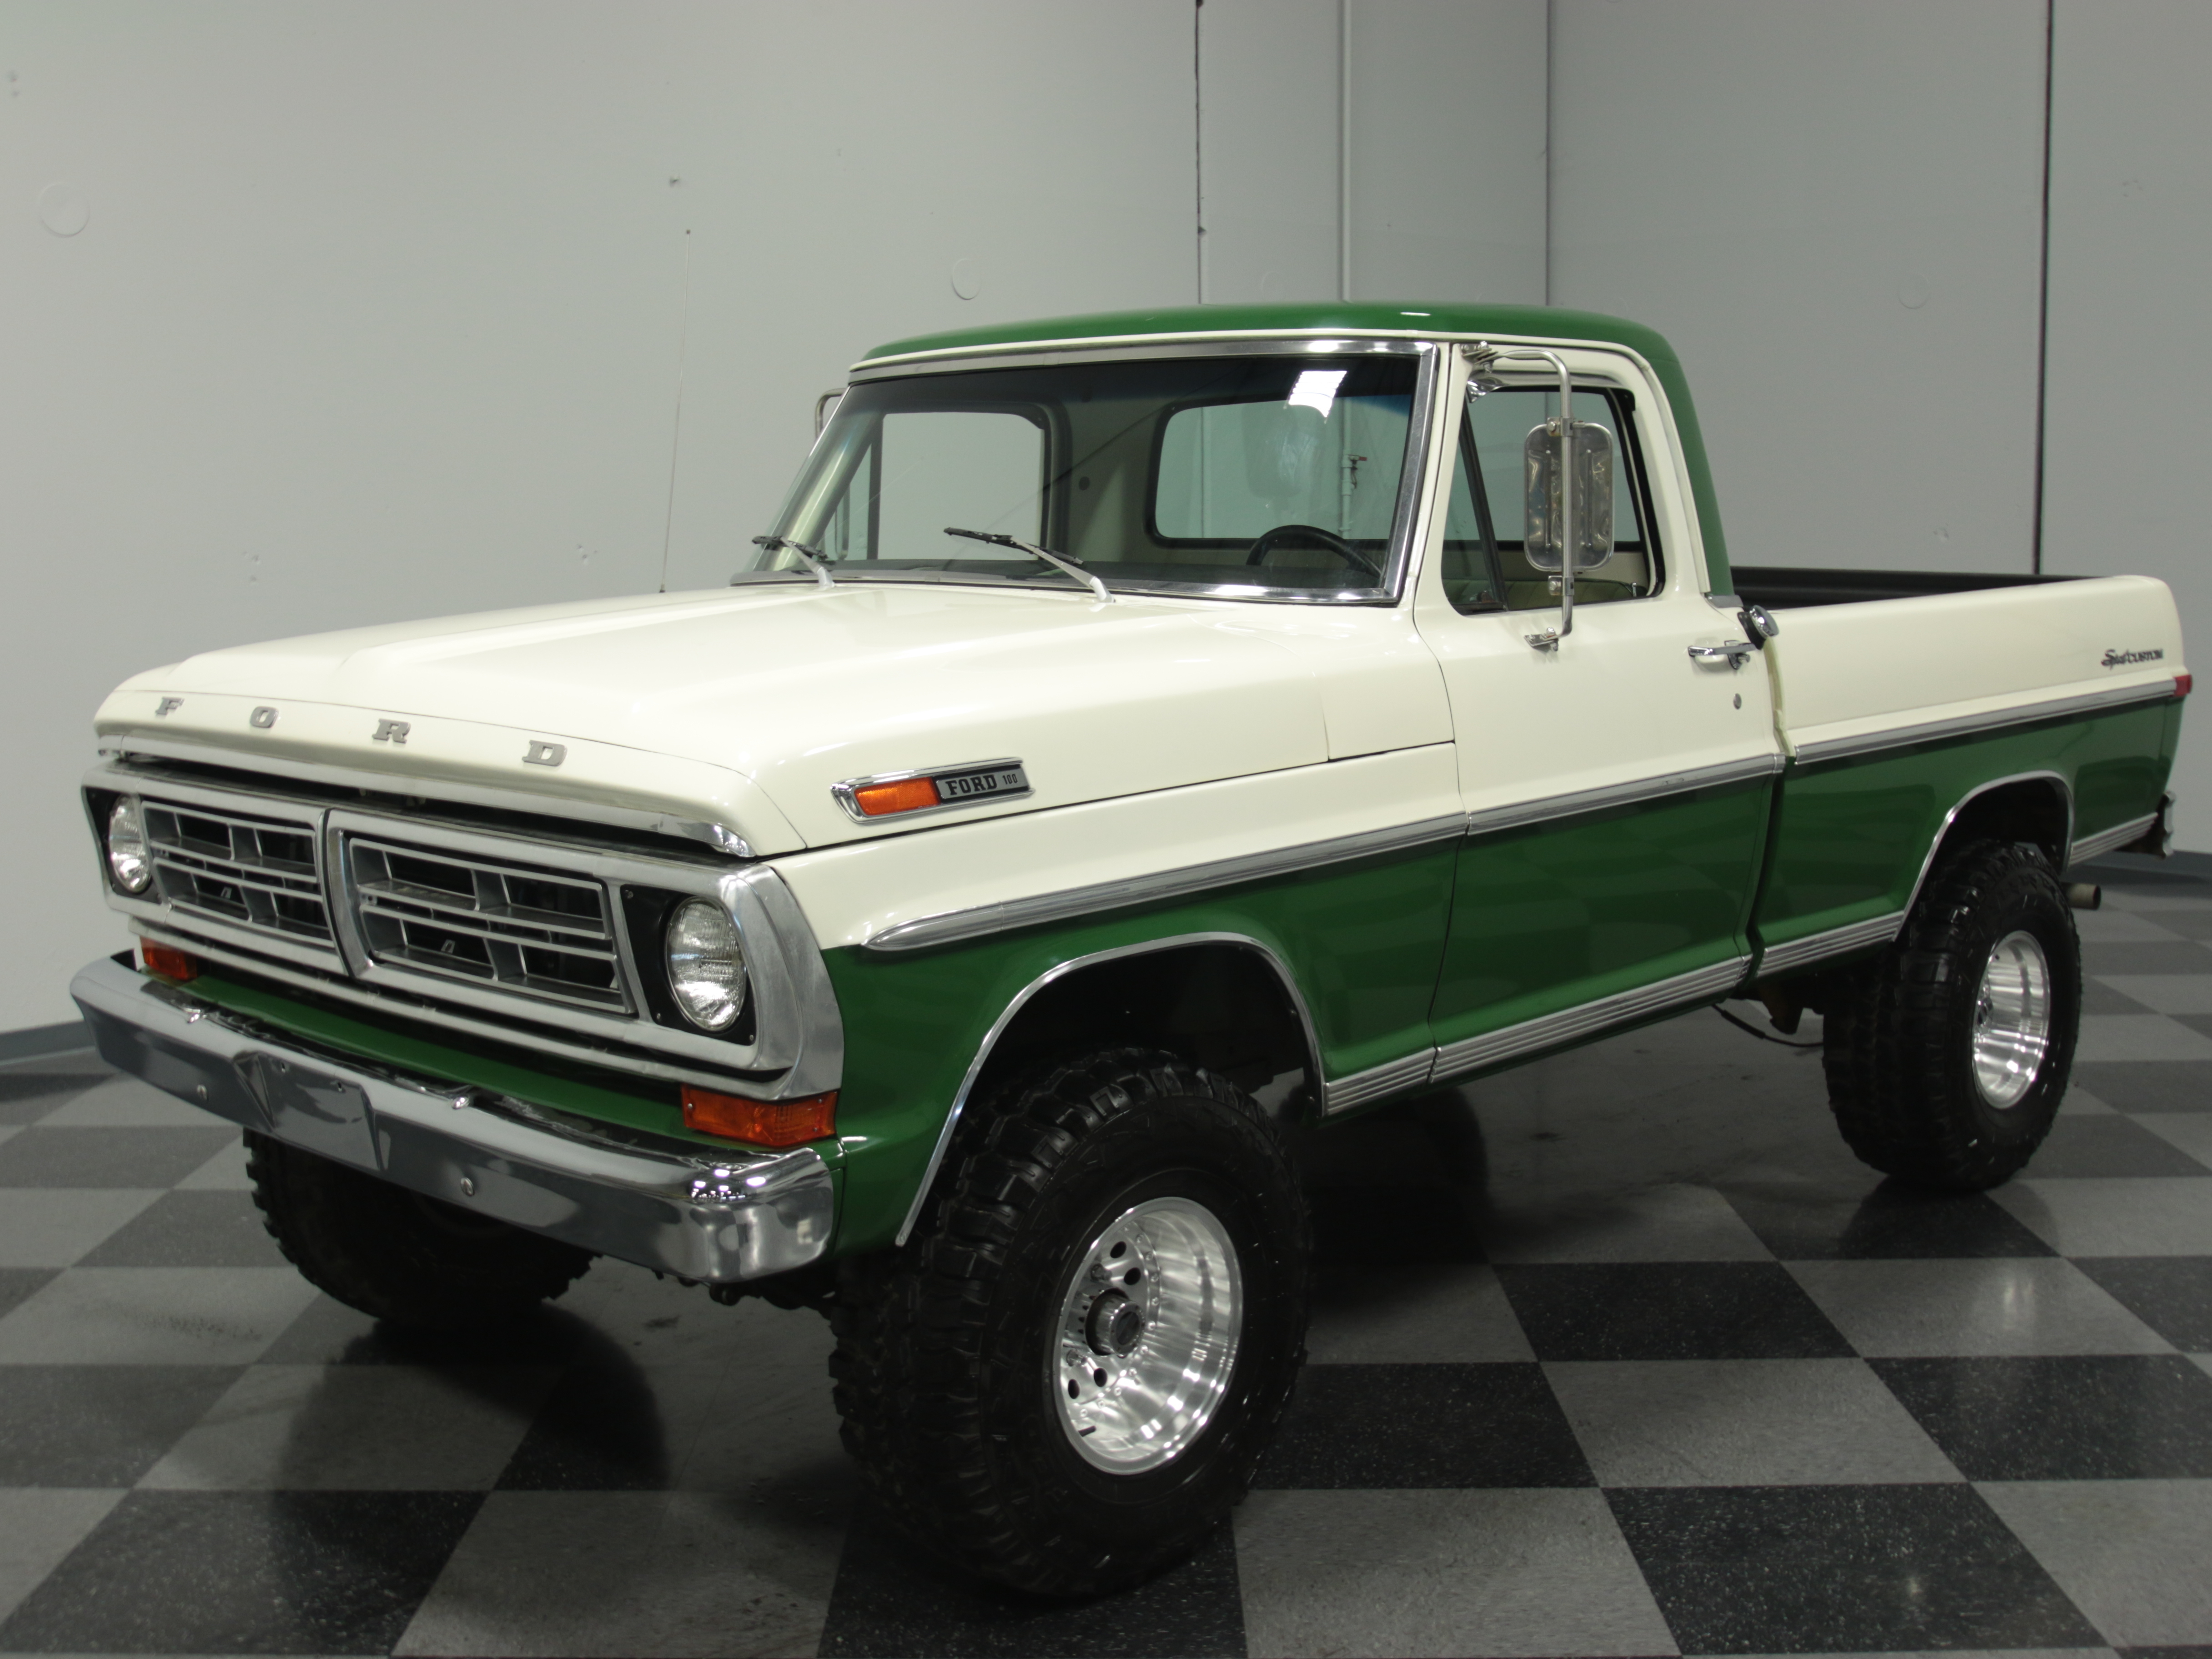 Chevy Dealer Tampa >> 1972 Ford F-100 | Streetside Classics - The Nation's Top Consignment Dealer of Classic and ...